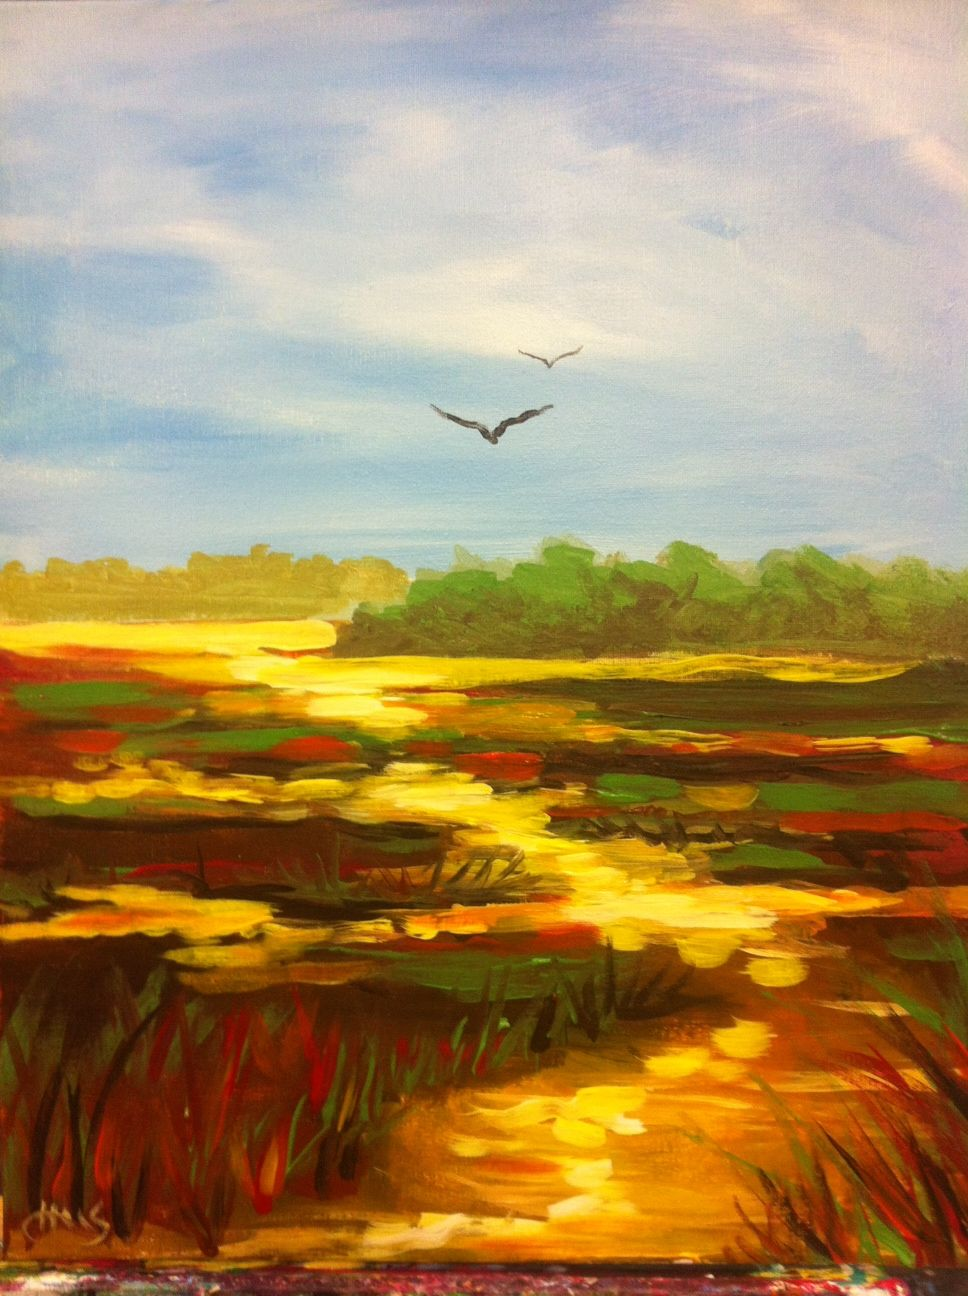 Paint Party Bluffton Sc Sip Paint Classes 843 501 Painting